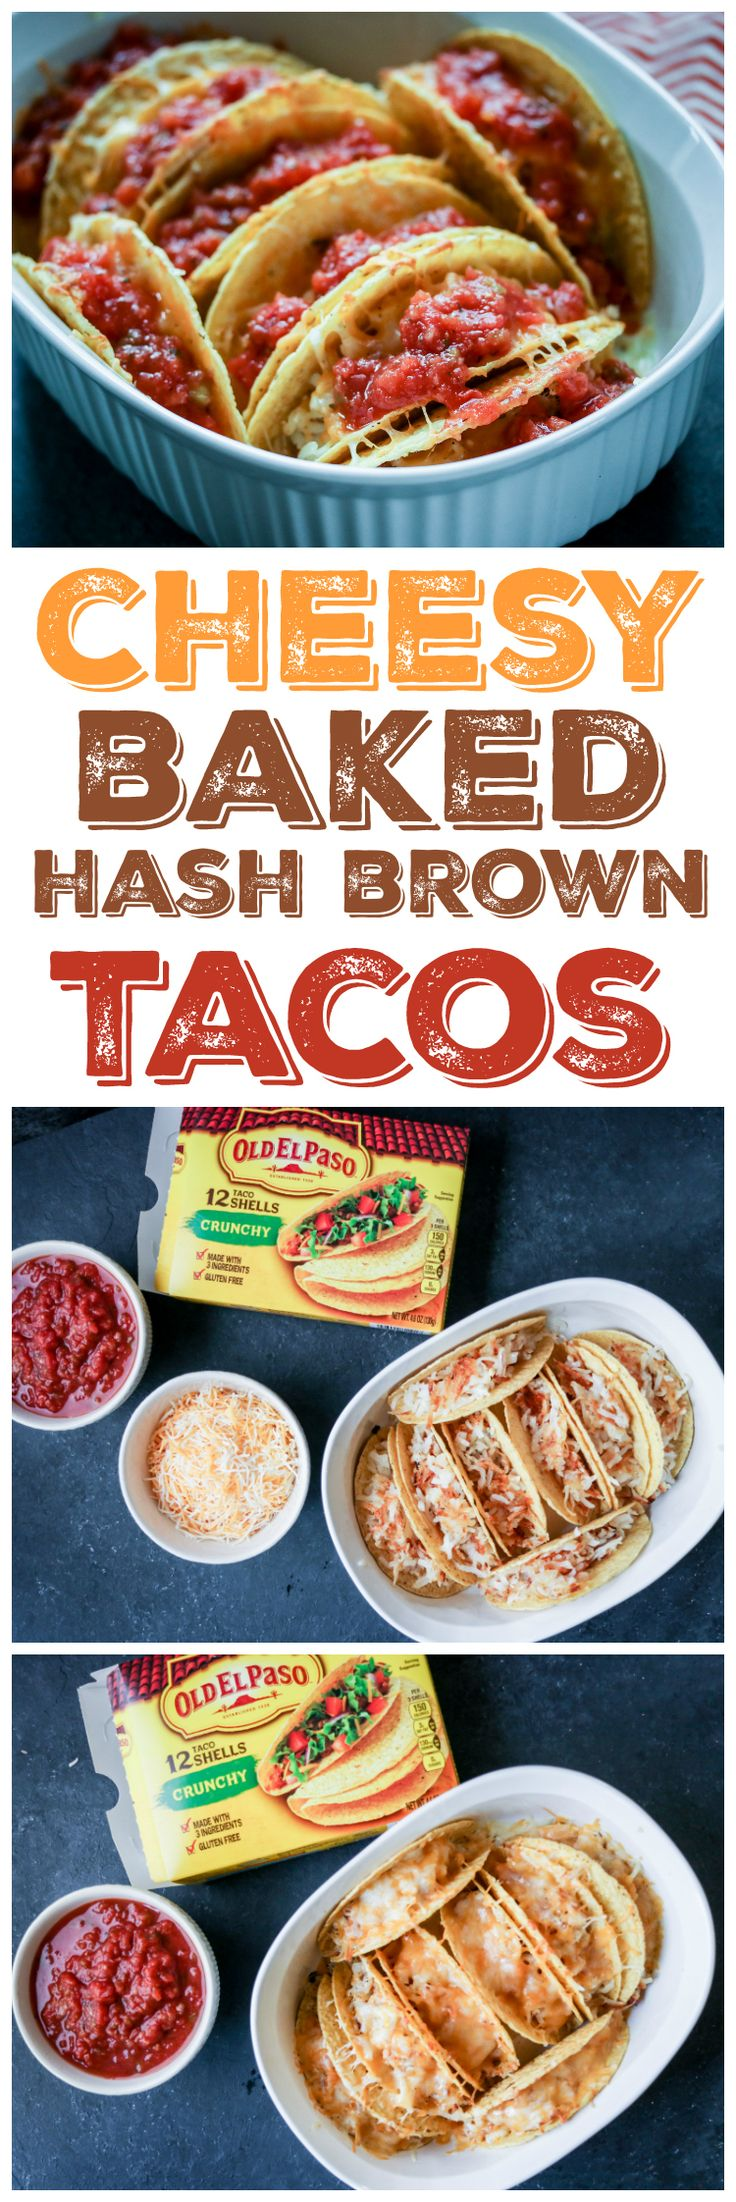 I love this easy breakfast - hash browns and cheese baked in a taco shell!